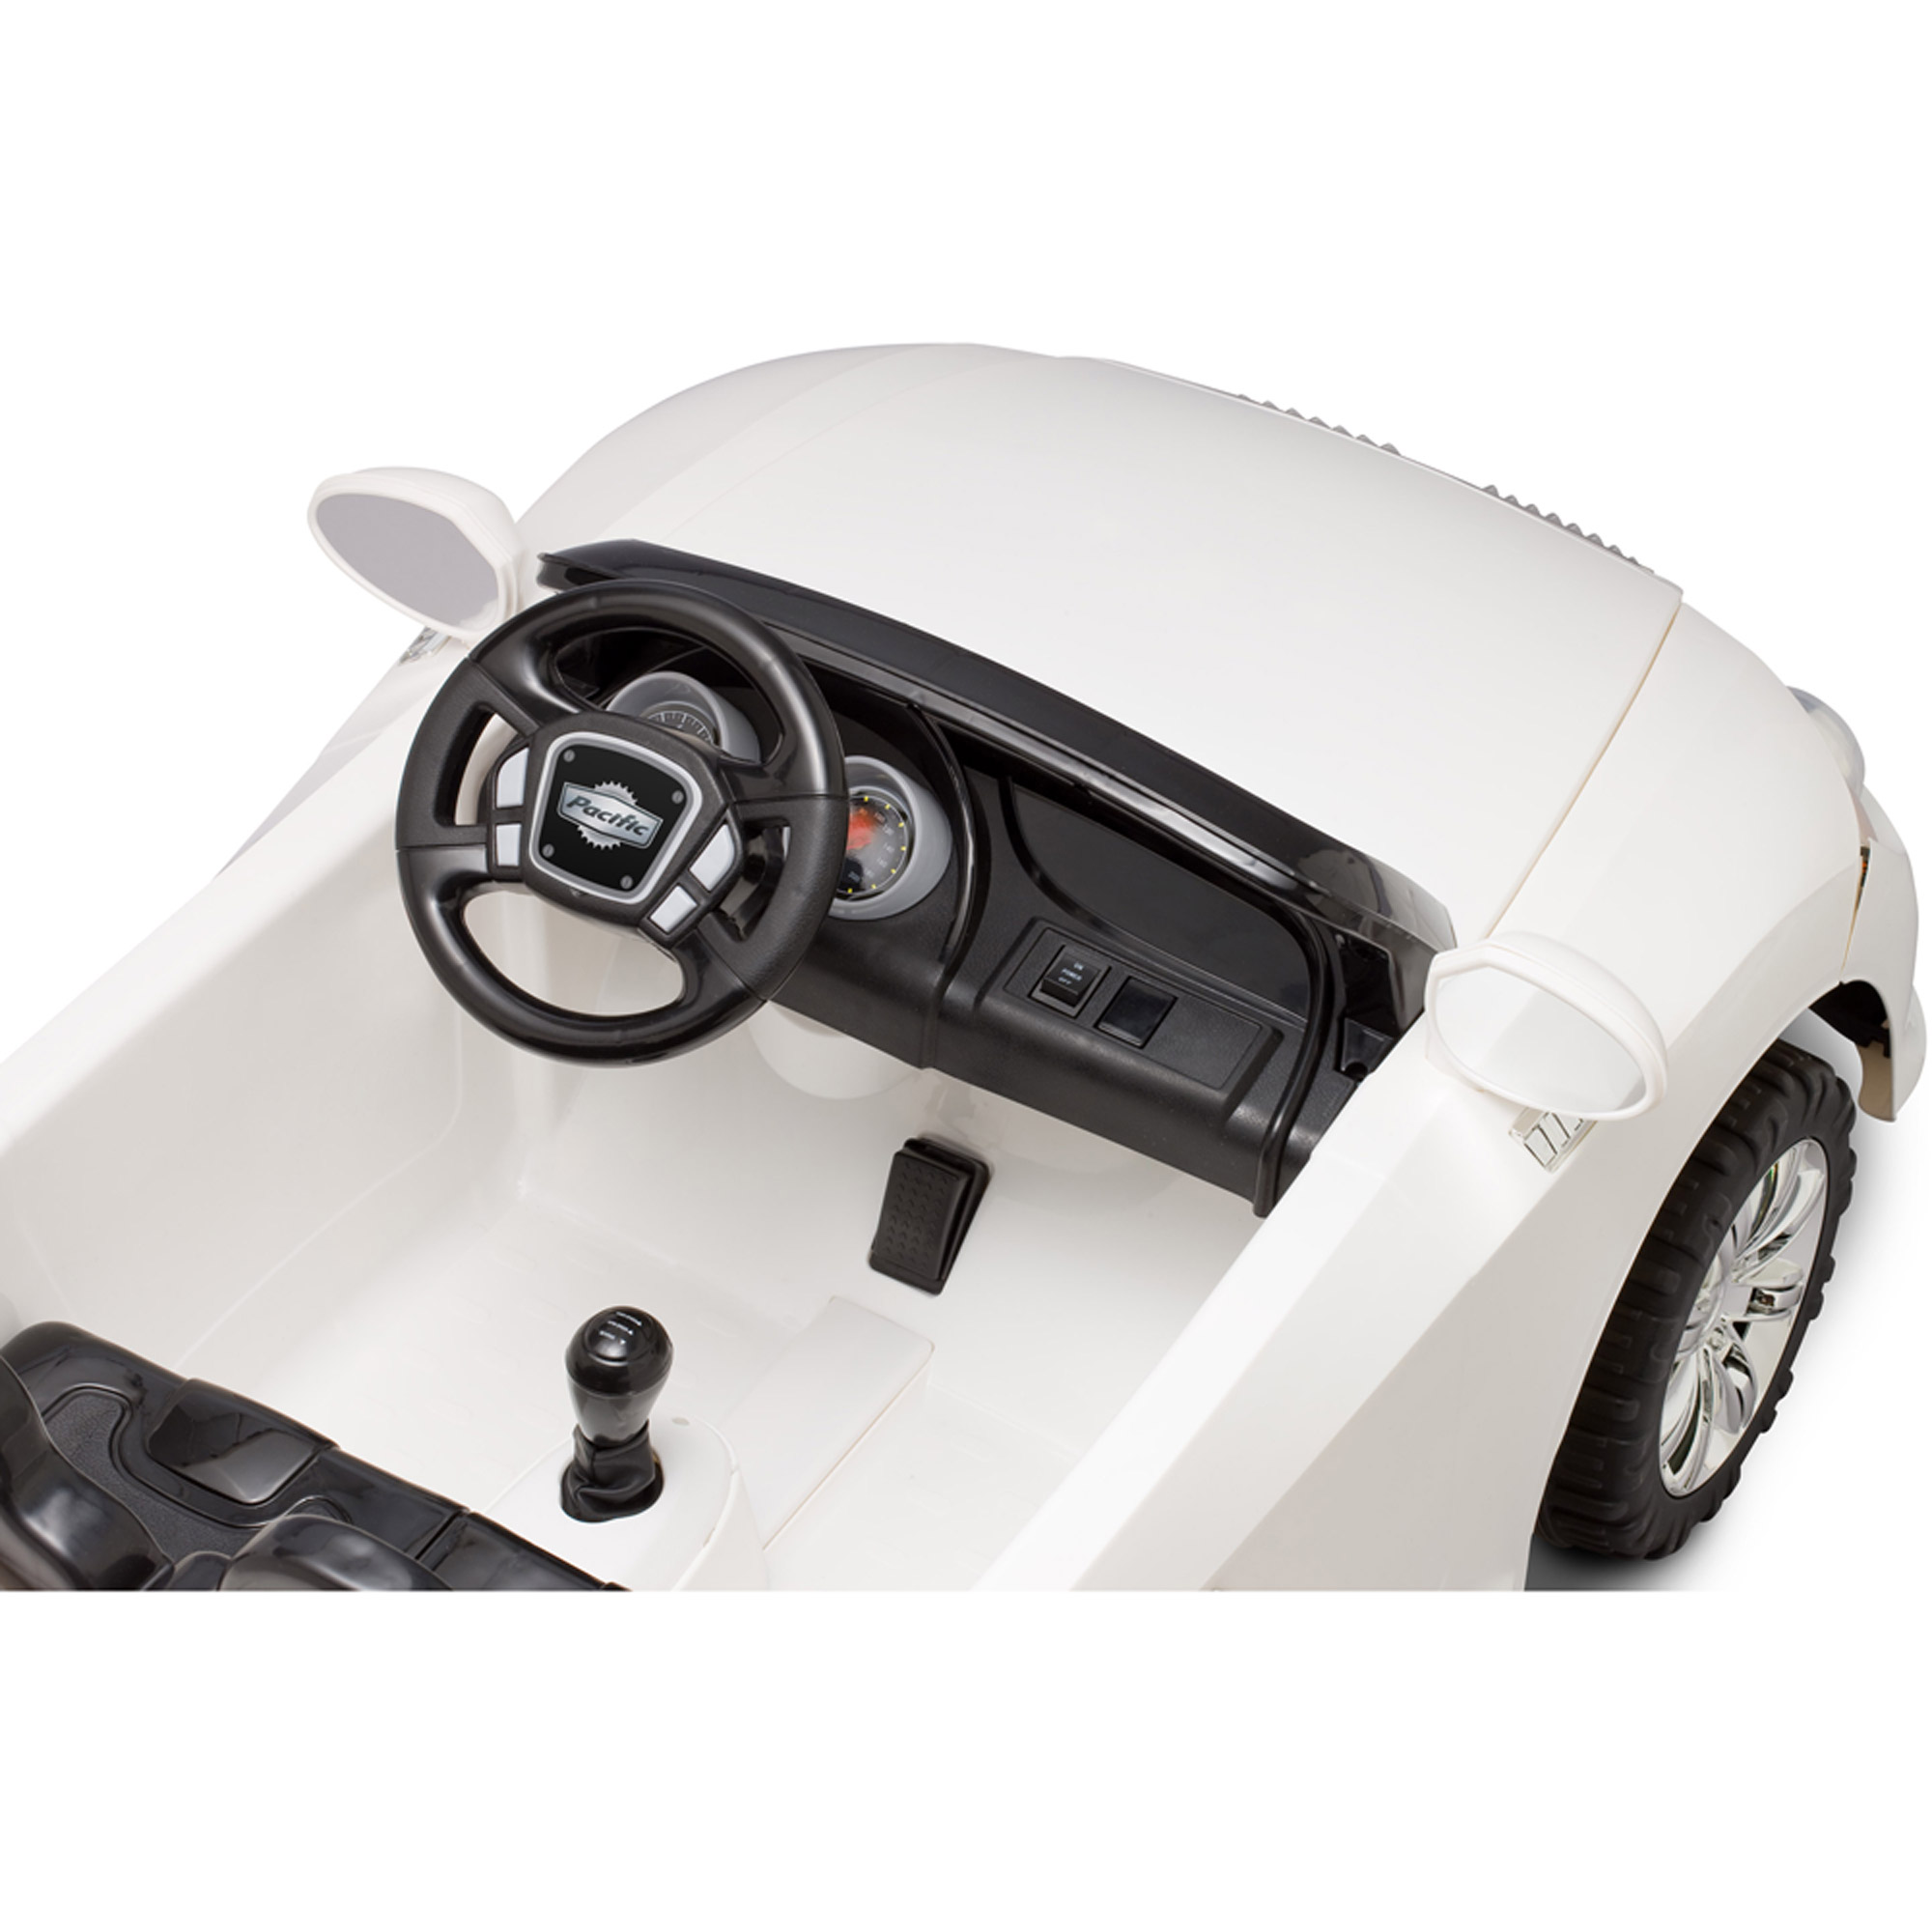 pacific cycle 12 volt battery powered convertible sports car ride on